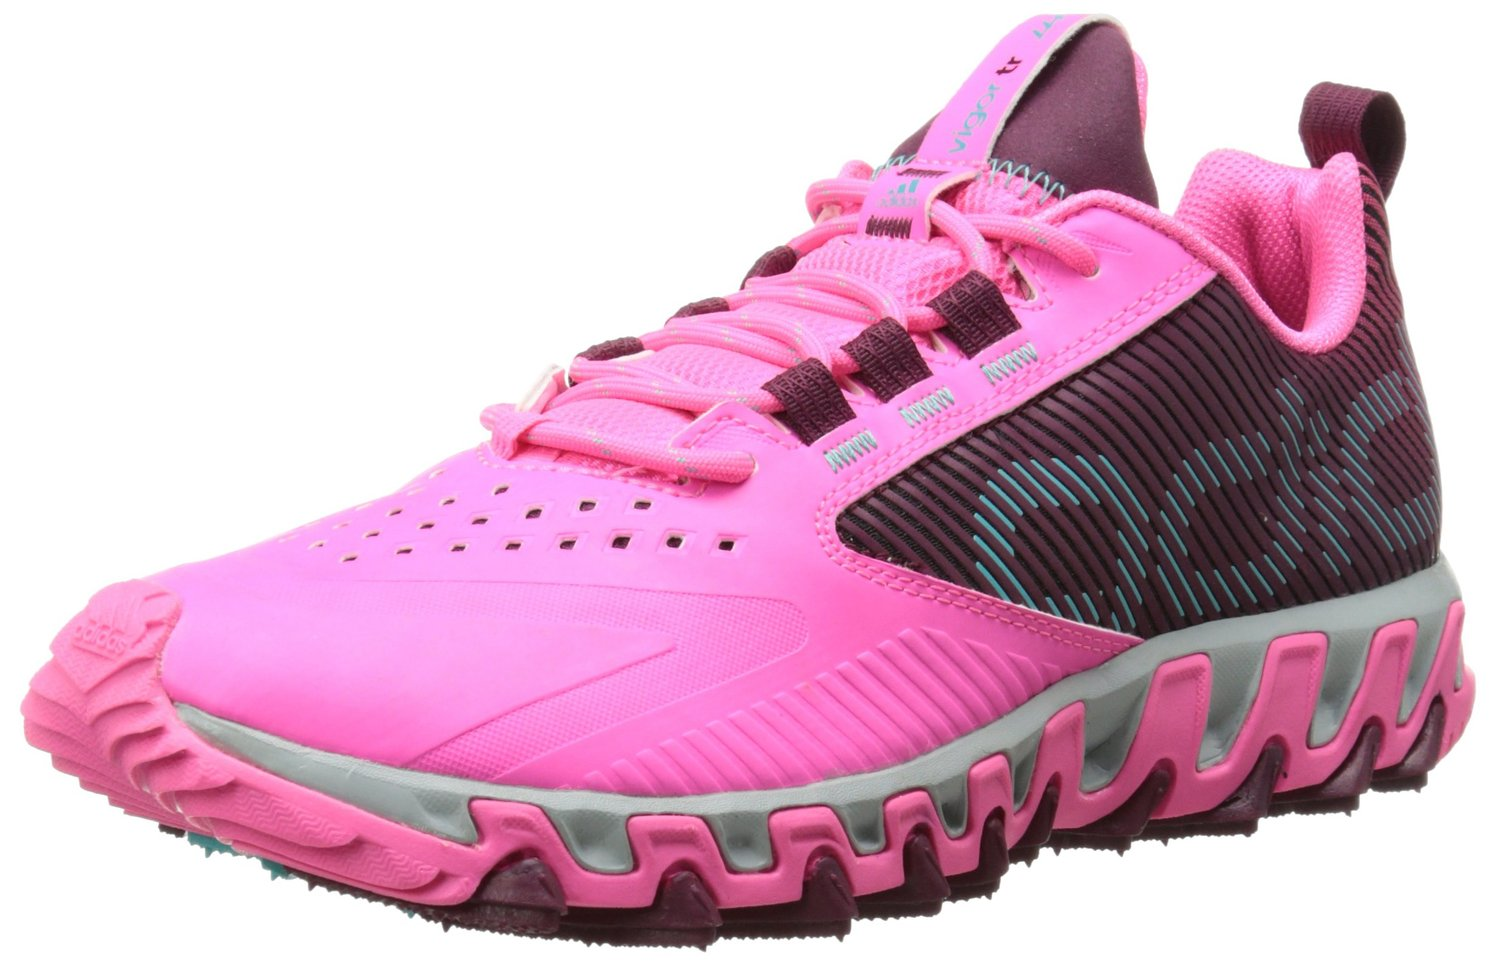 c77177673da70 adidas Performance Vigor 5 TR W Trail Running Shoe Solar PinkAmazon  RedVivid Mint